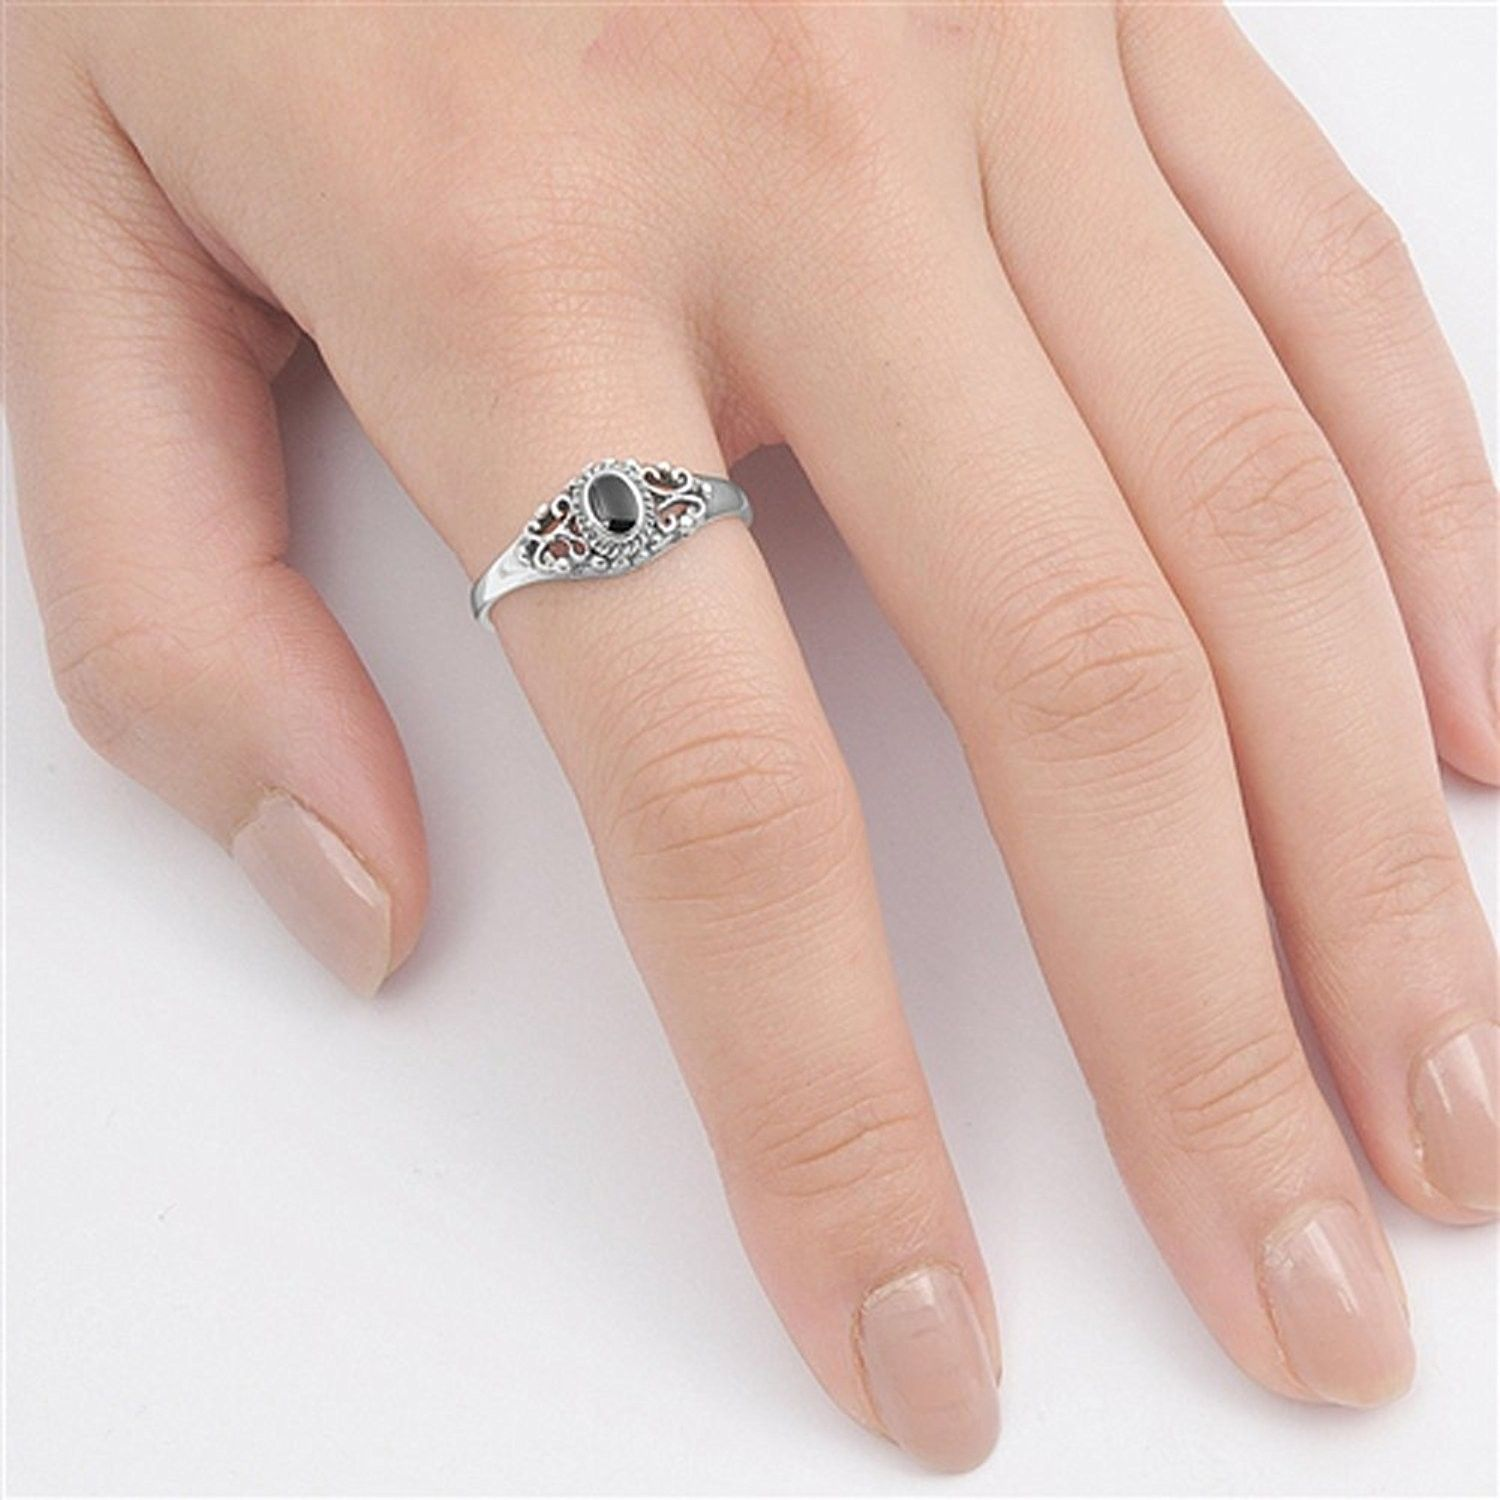 5 Stones CZ Ring Sterling Silver 925 Best Deal Jewelry Gift USA Seller Size 10